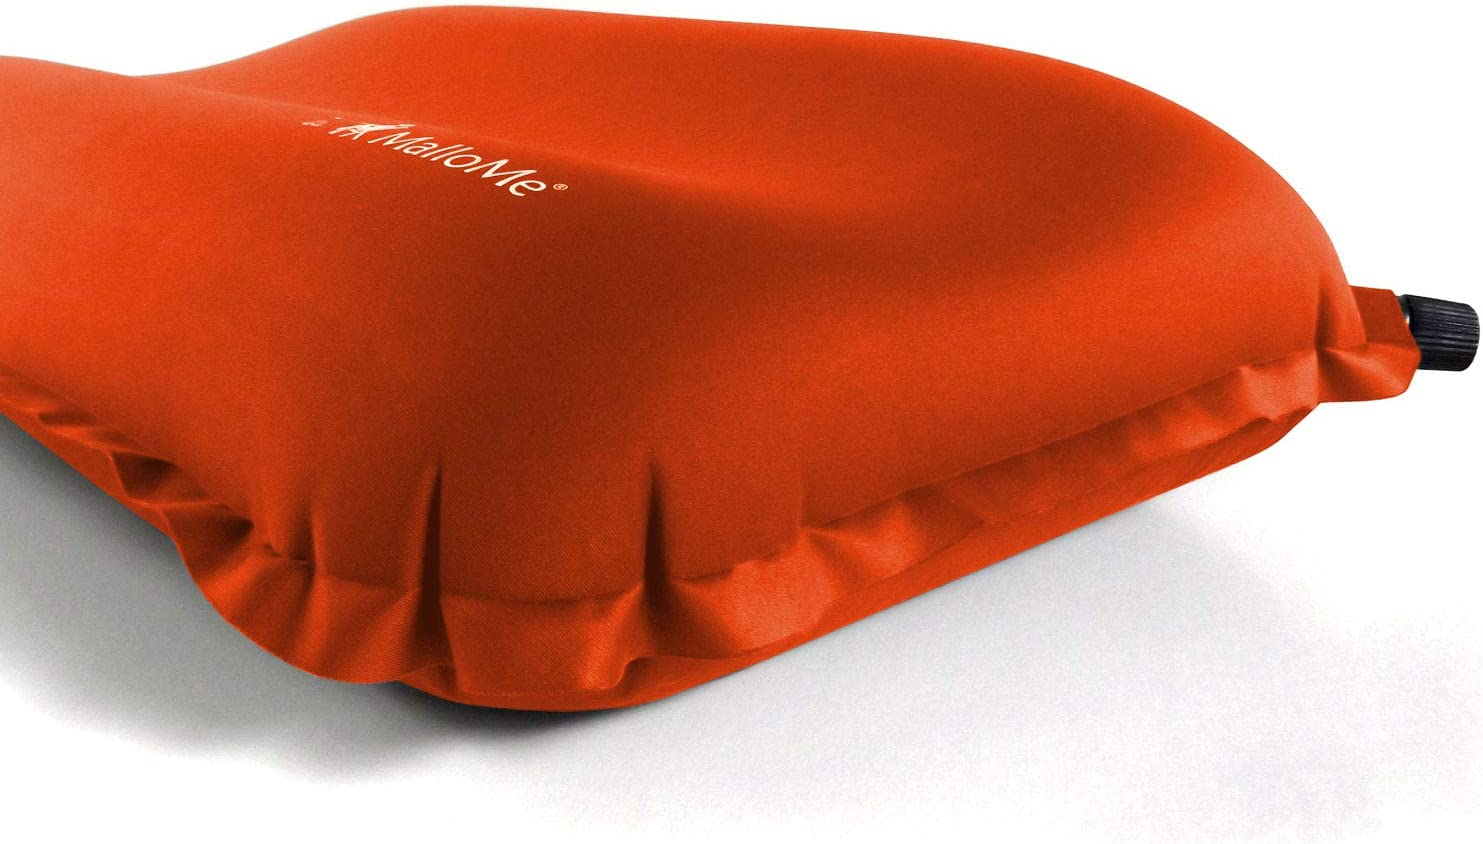 Backpacking Camp Pillows for Sleeping Bag Pad MalloMe Inflatable Camping Travel Pillow Small Mini Air Size Ultralight Inflating Compressible Compact Portable Gear Accessories Hiking Orange